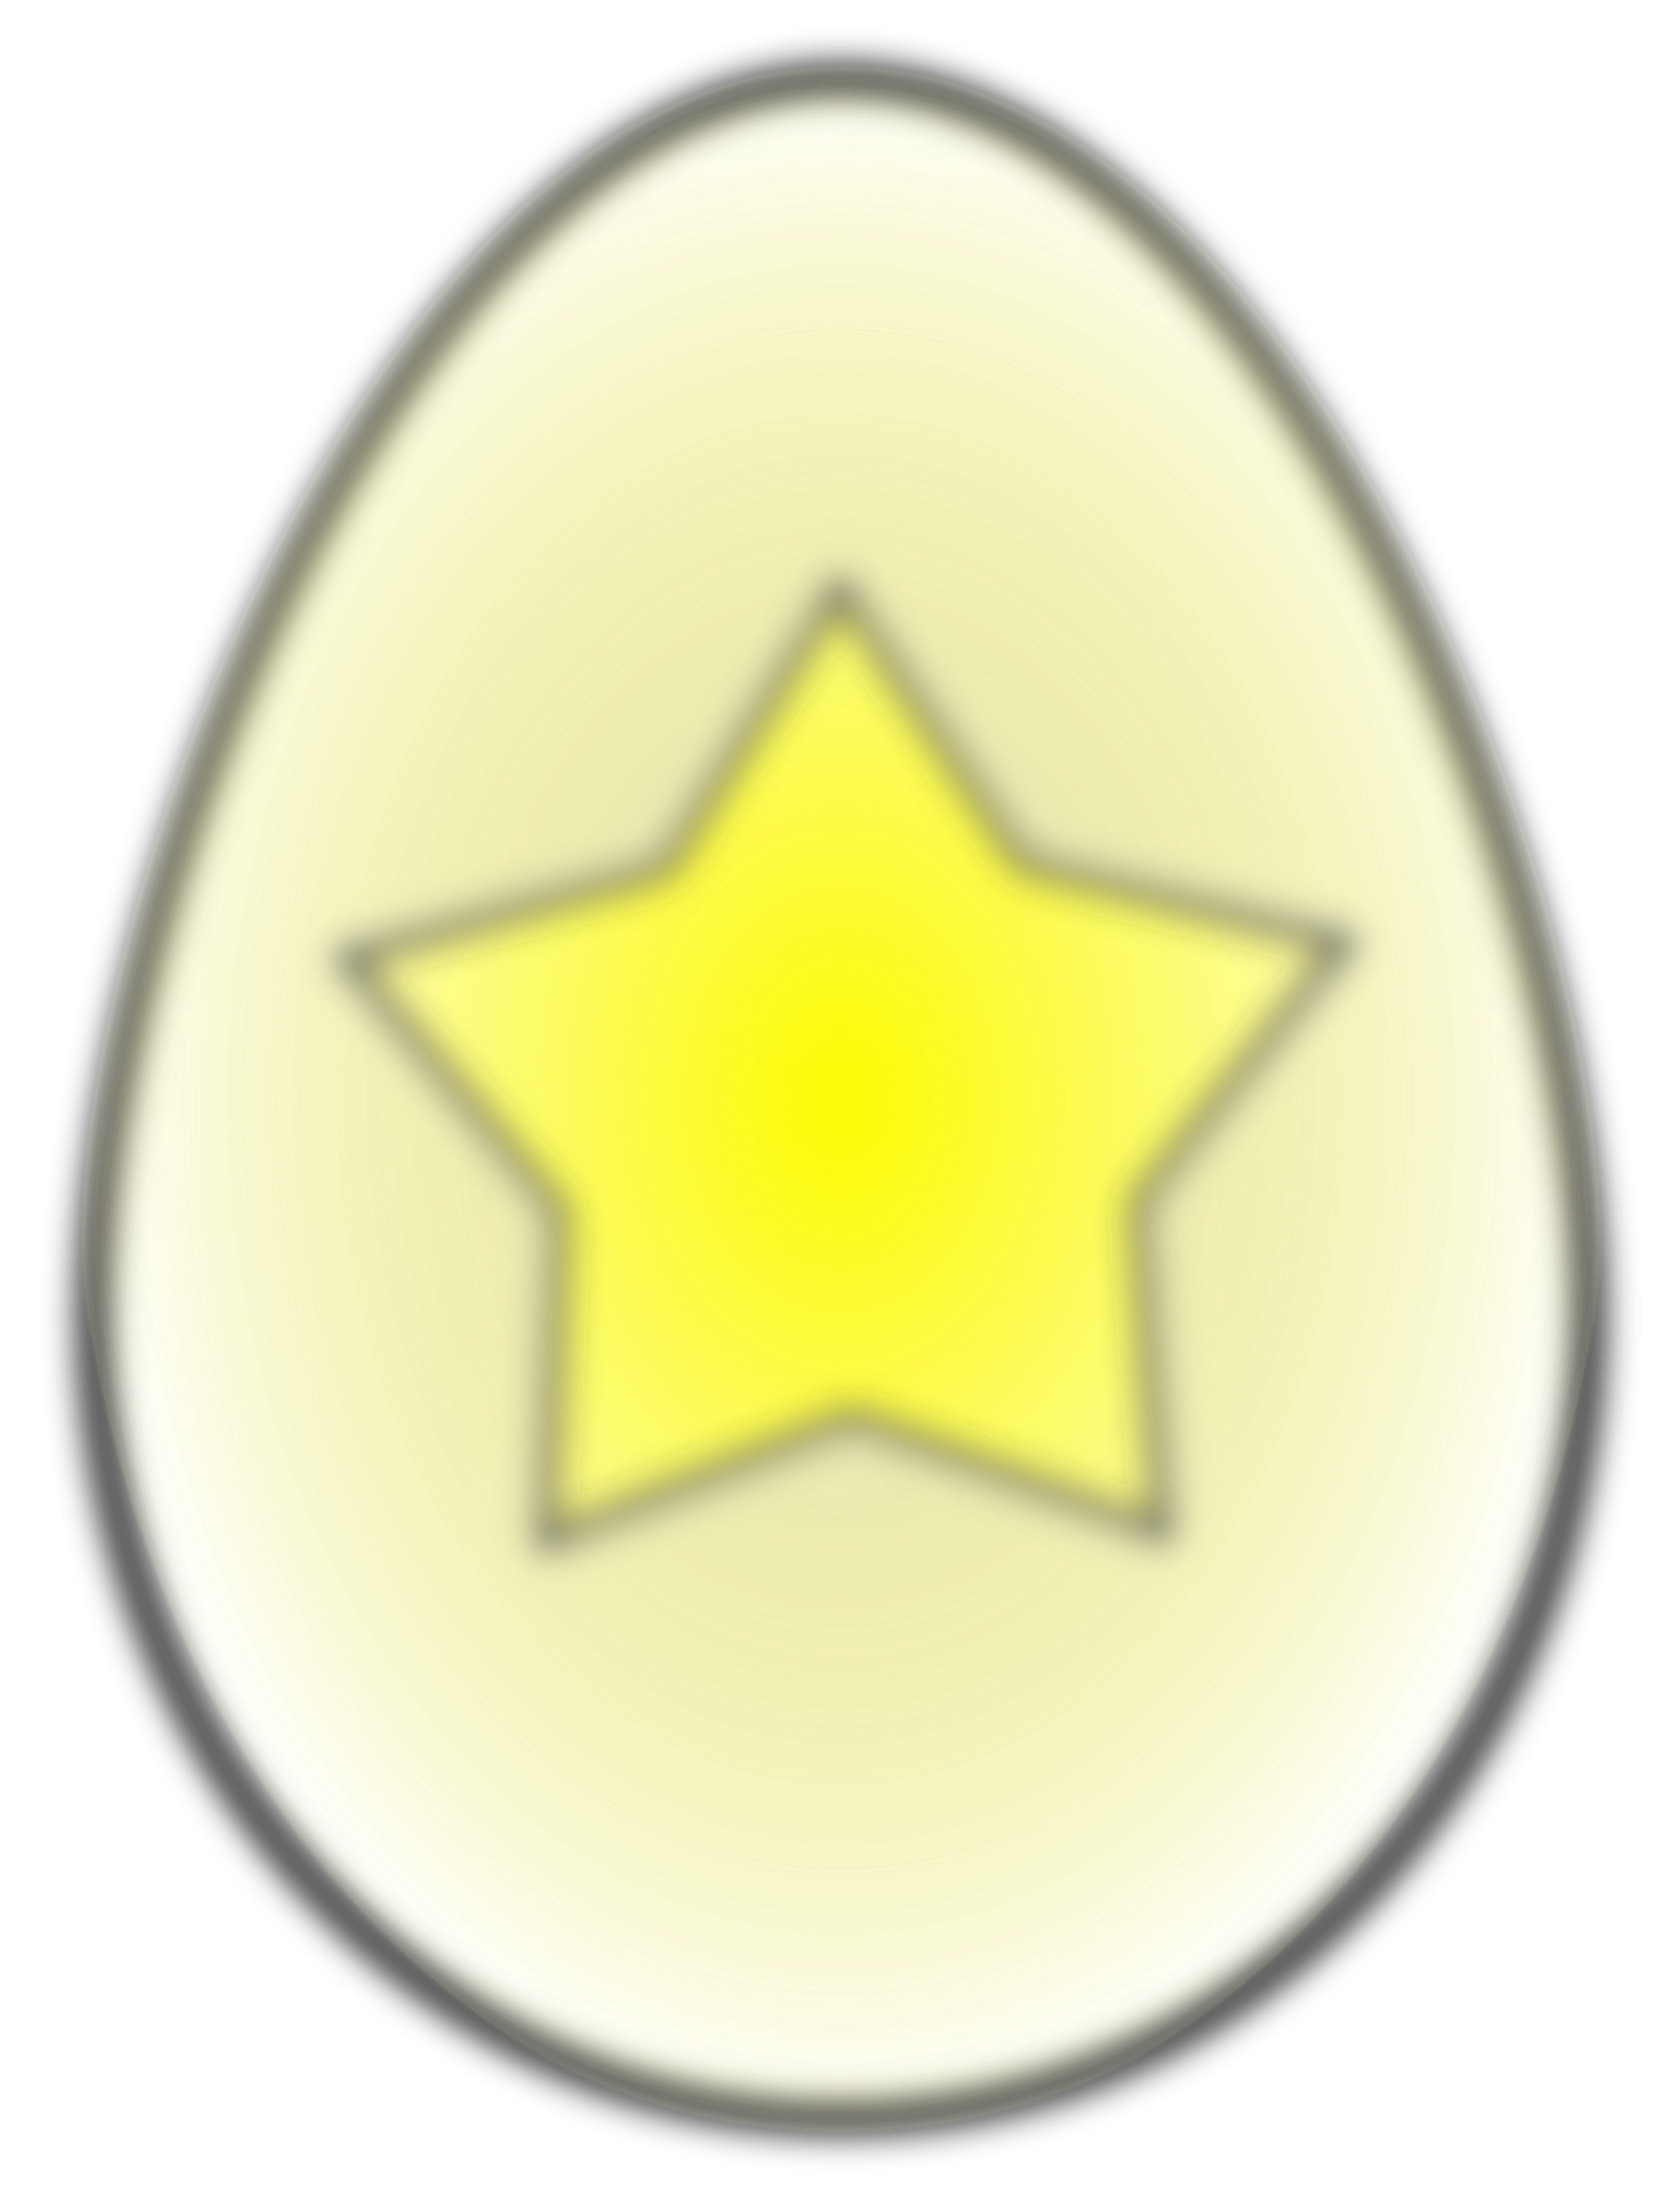 Easter egg (star) by mystica